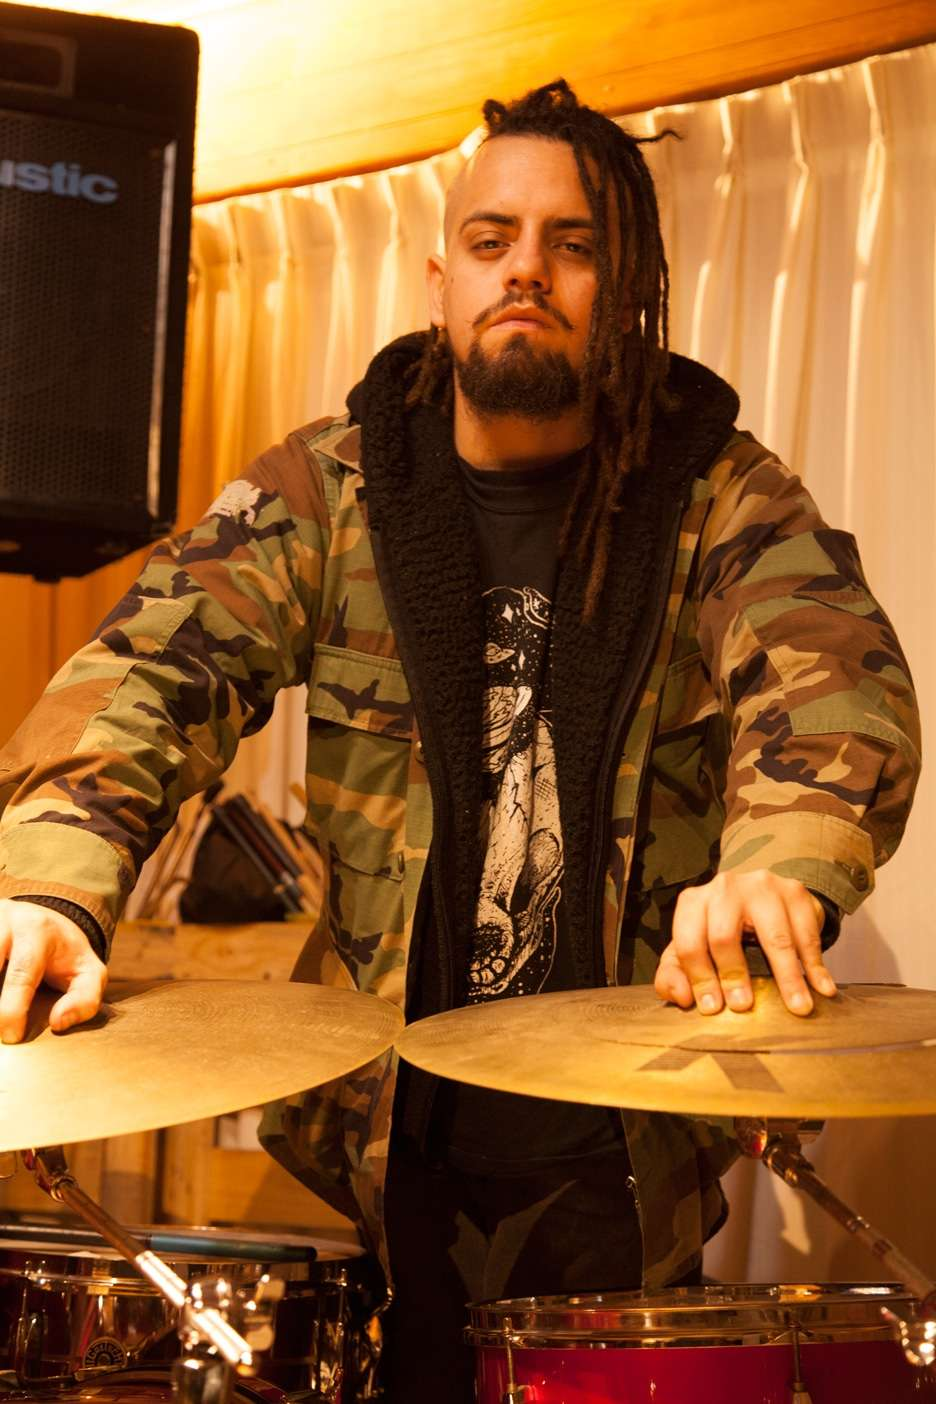 Drummer with Dark K Cymbals and militar camouflage jacket